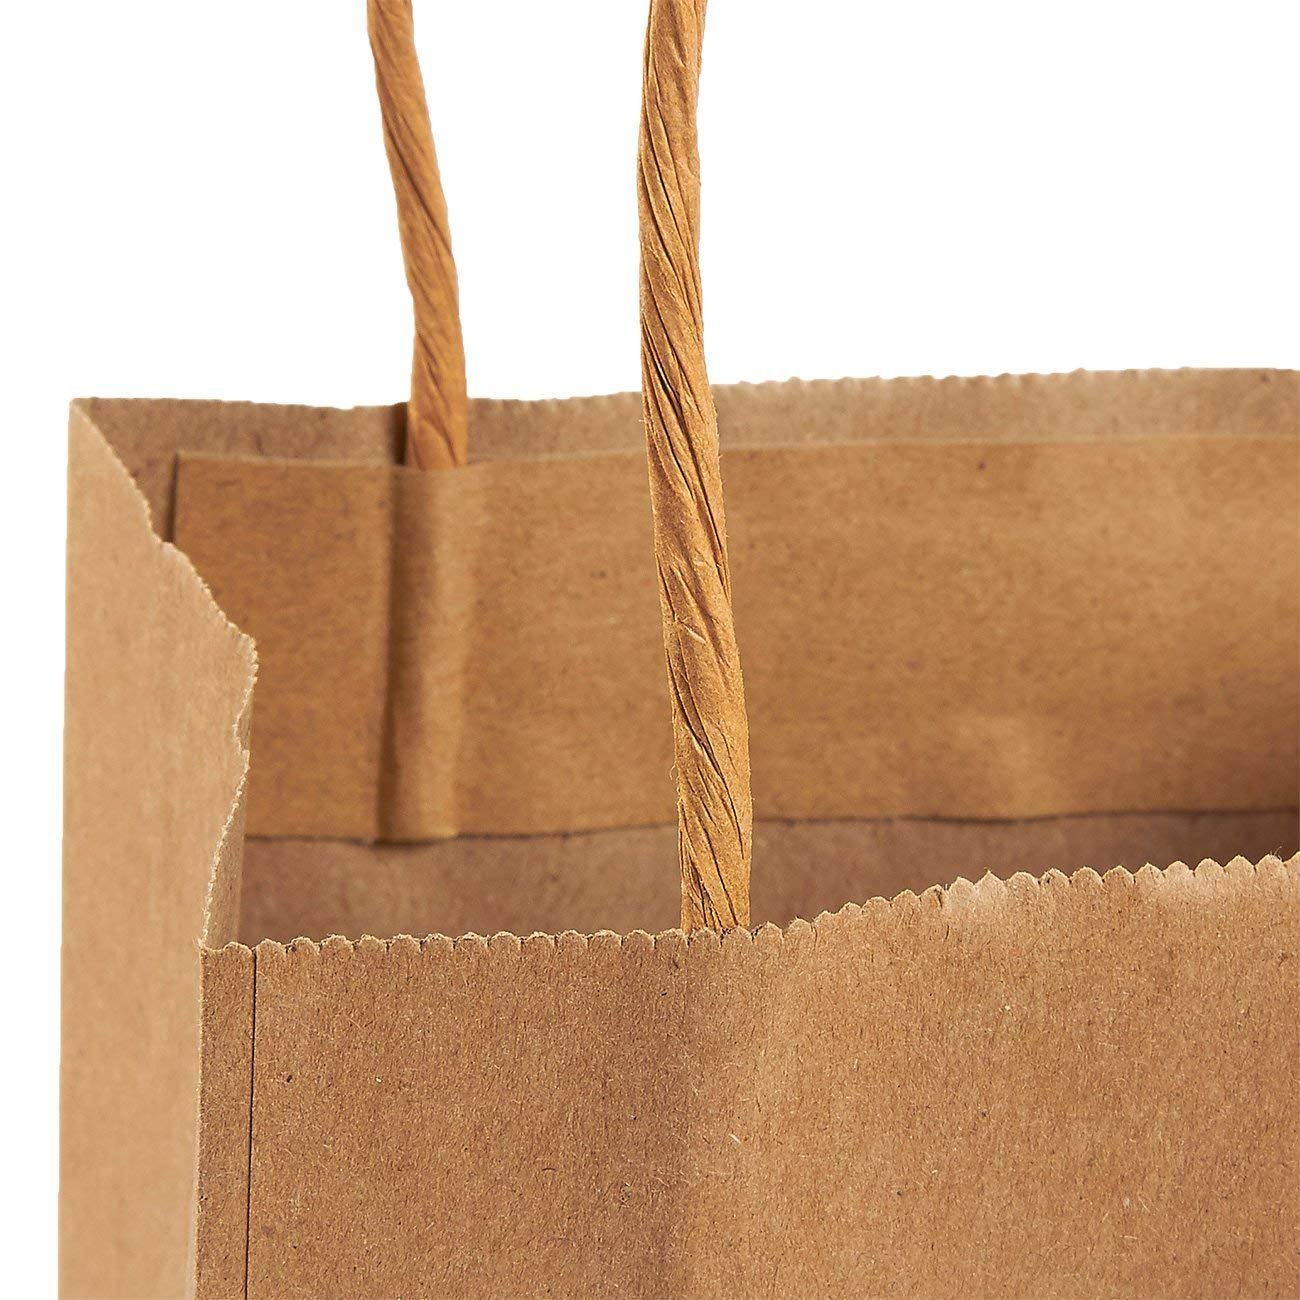 Amazon.com: Bolsas de papel kraft marrón con asas, ideales ...